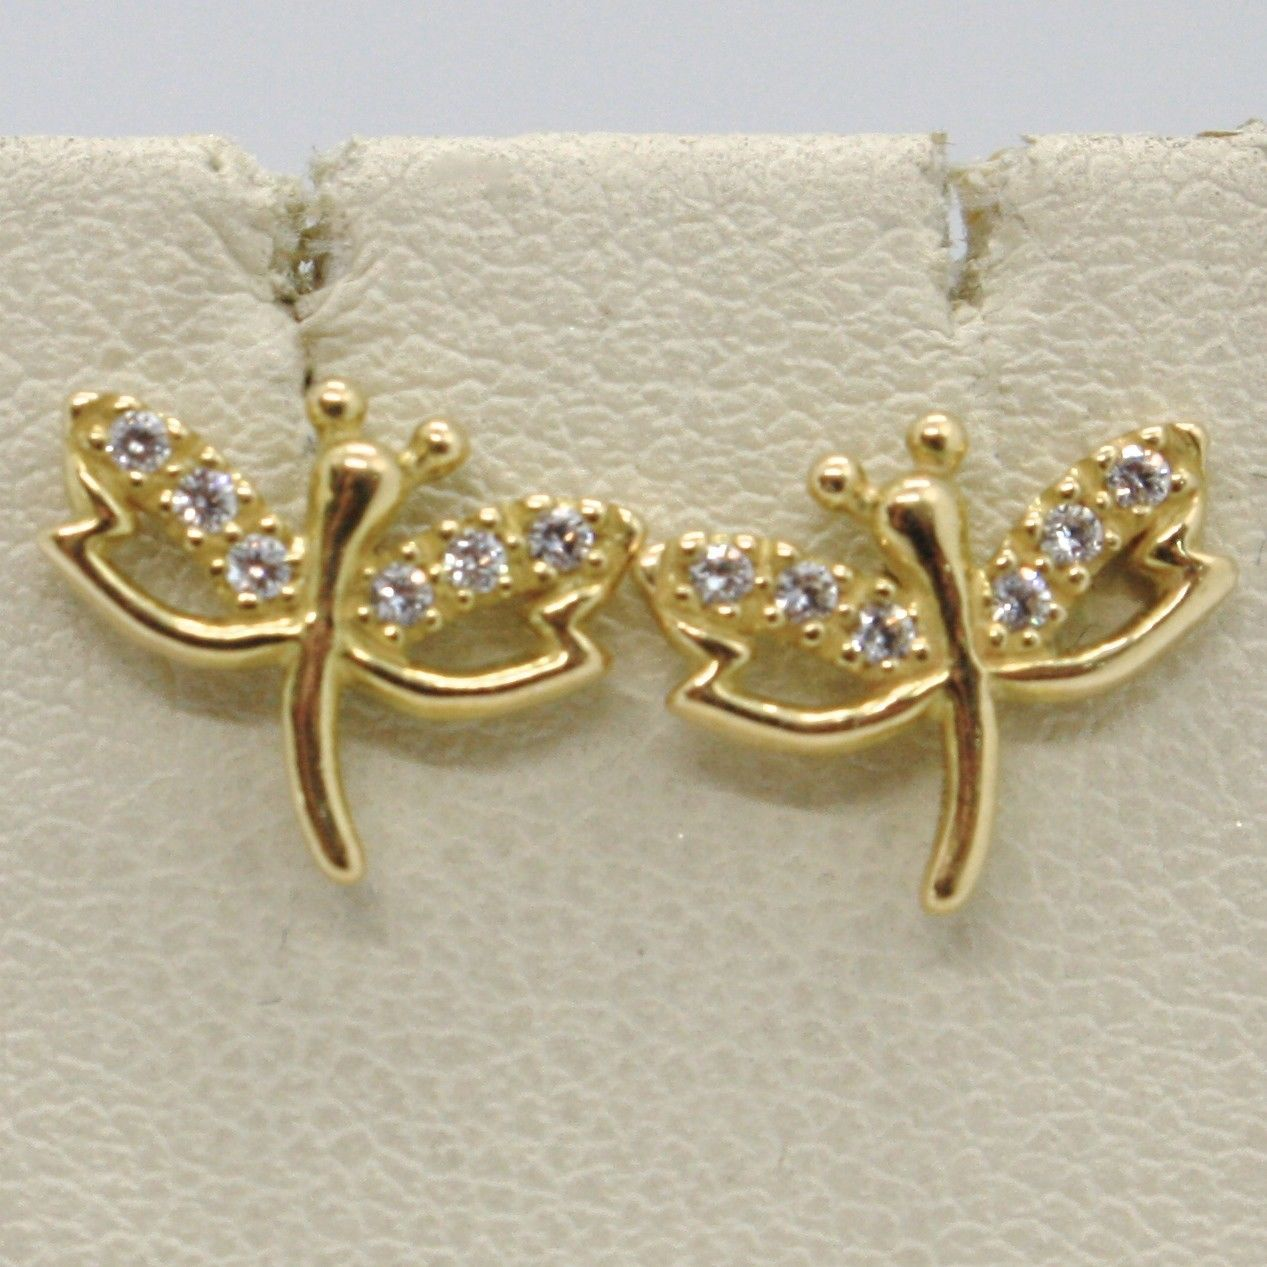 SOLID 18K YELLOW GOLD EARRINGS DRAGONFLY & ZIRCONIA DIAMETER 10 MM MADE IN ITALY